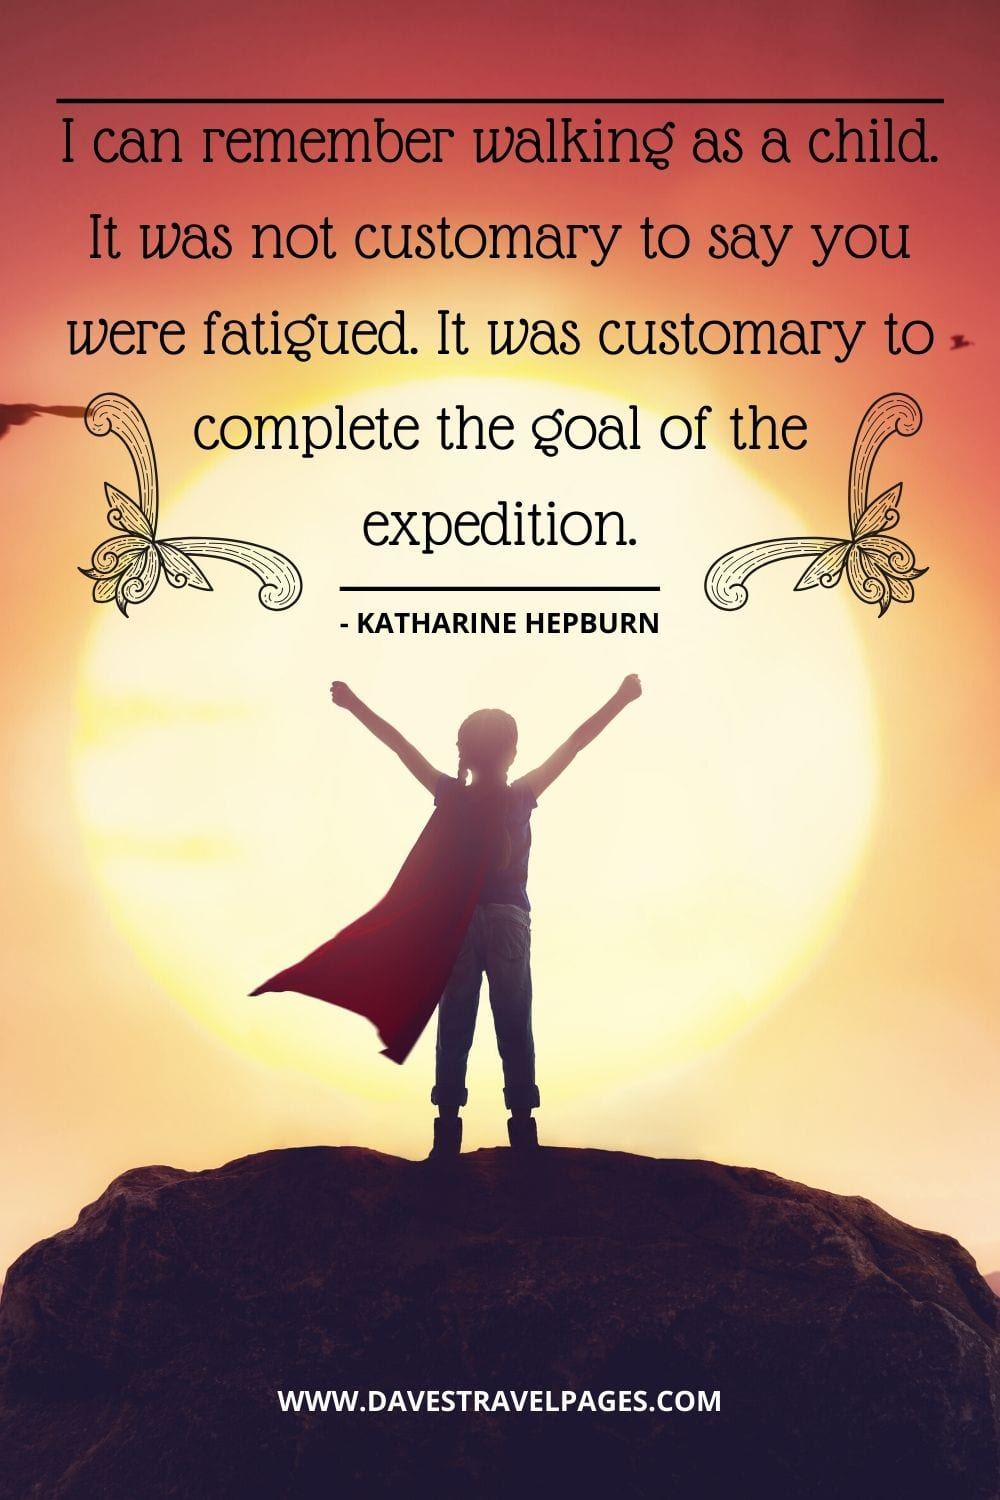 Quotes about walking: I can remember walking as a child. It was not customary to say you were fatigued. It was customary to complete the goal of the expedition. - Katharine Hepburn